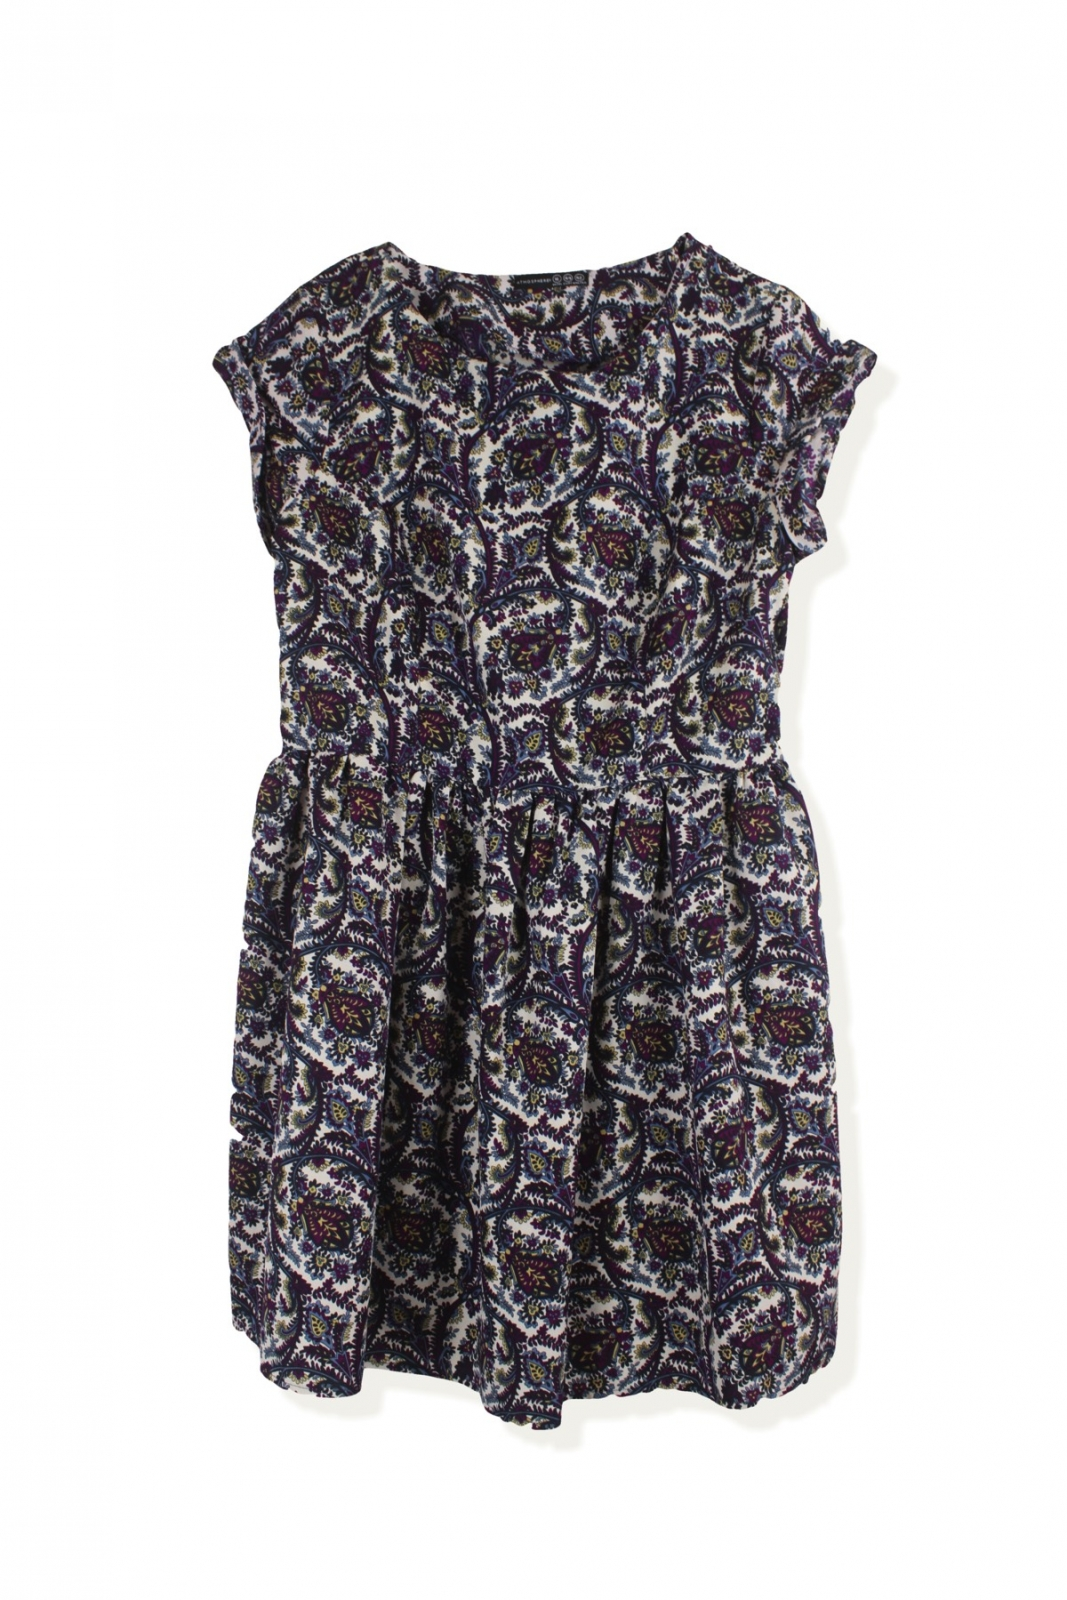 Second-hand Clothing - Women, Dresses, Second-Hand Clothing